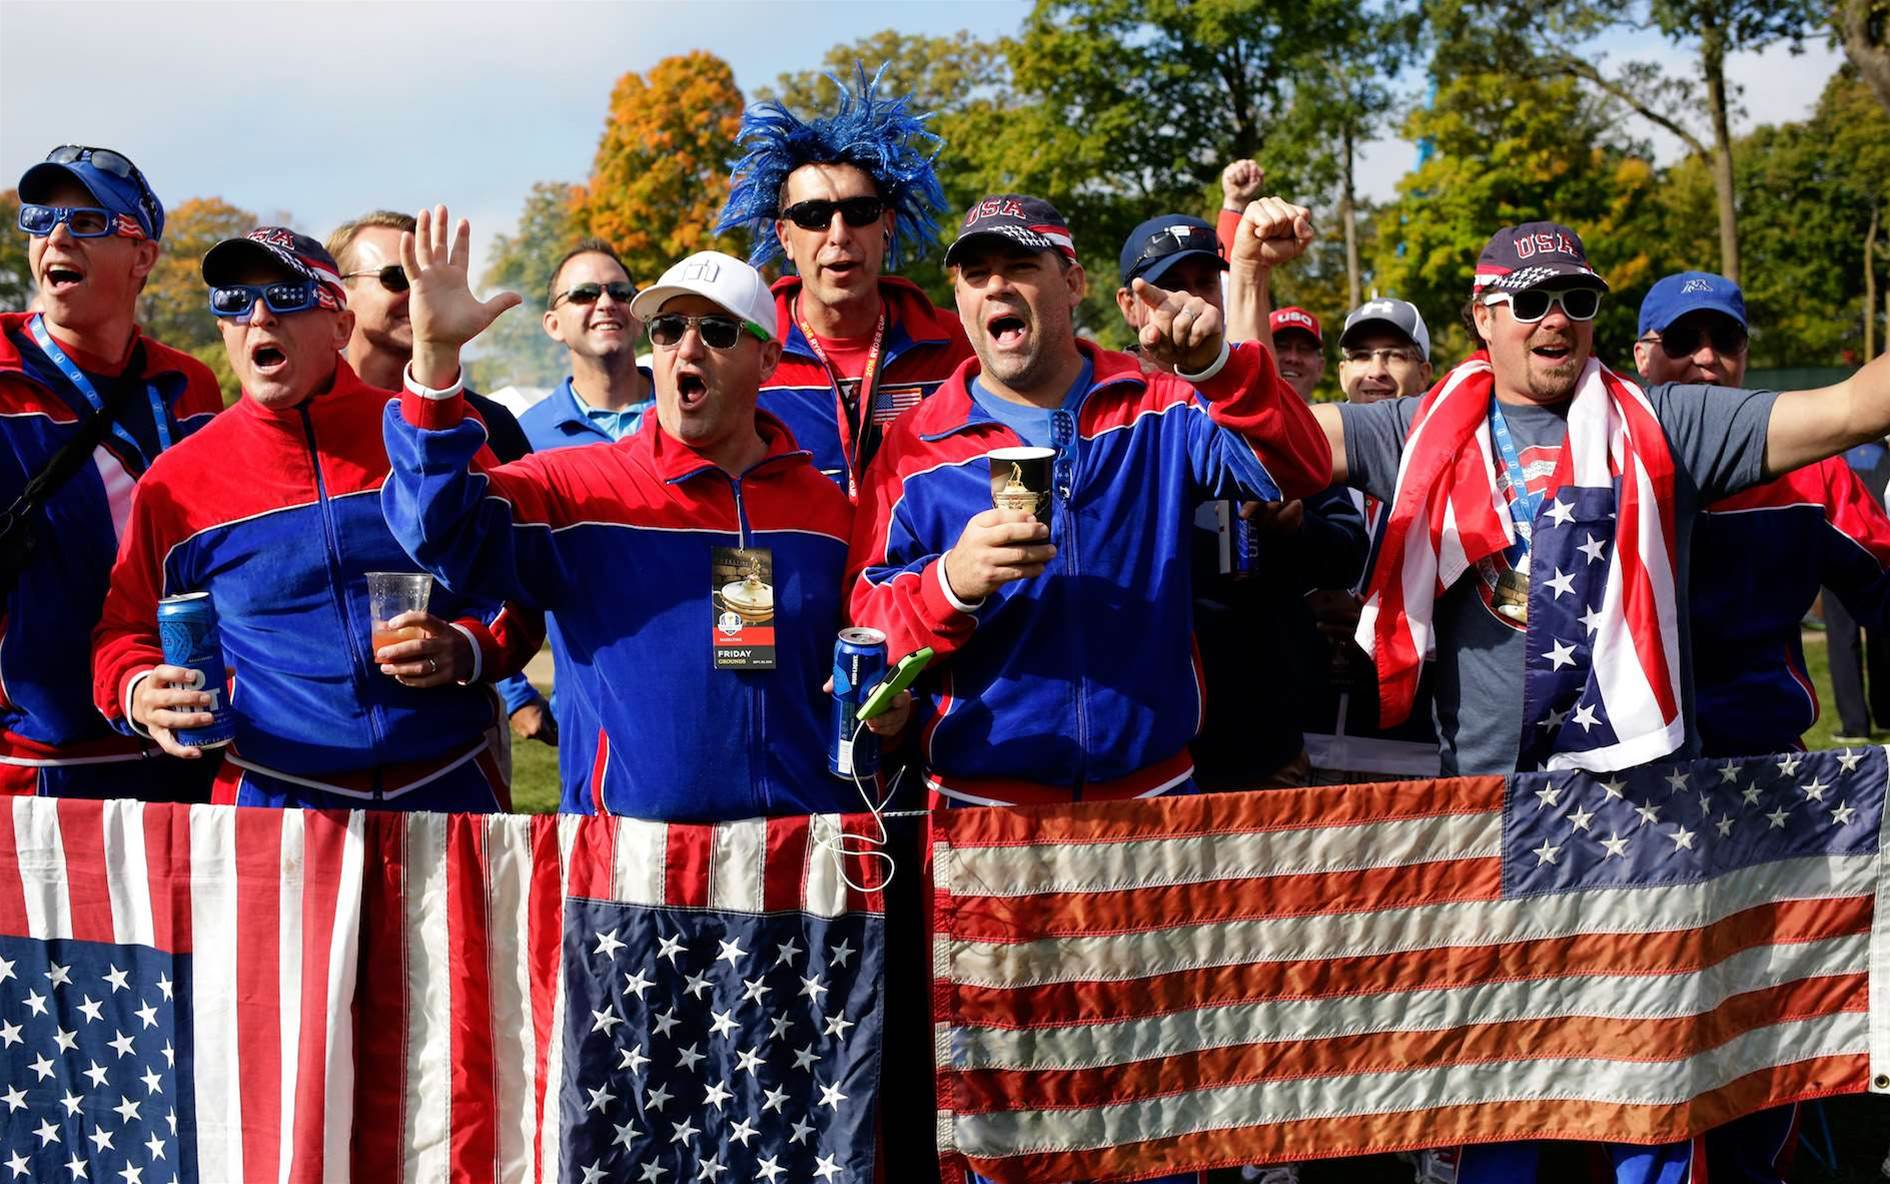 RYDER CUP: Booze-fuelled, abusive fans cast shadow over U.S win